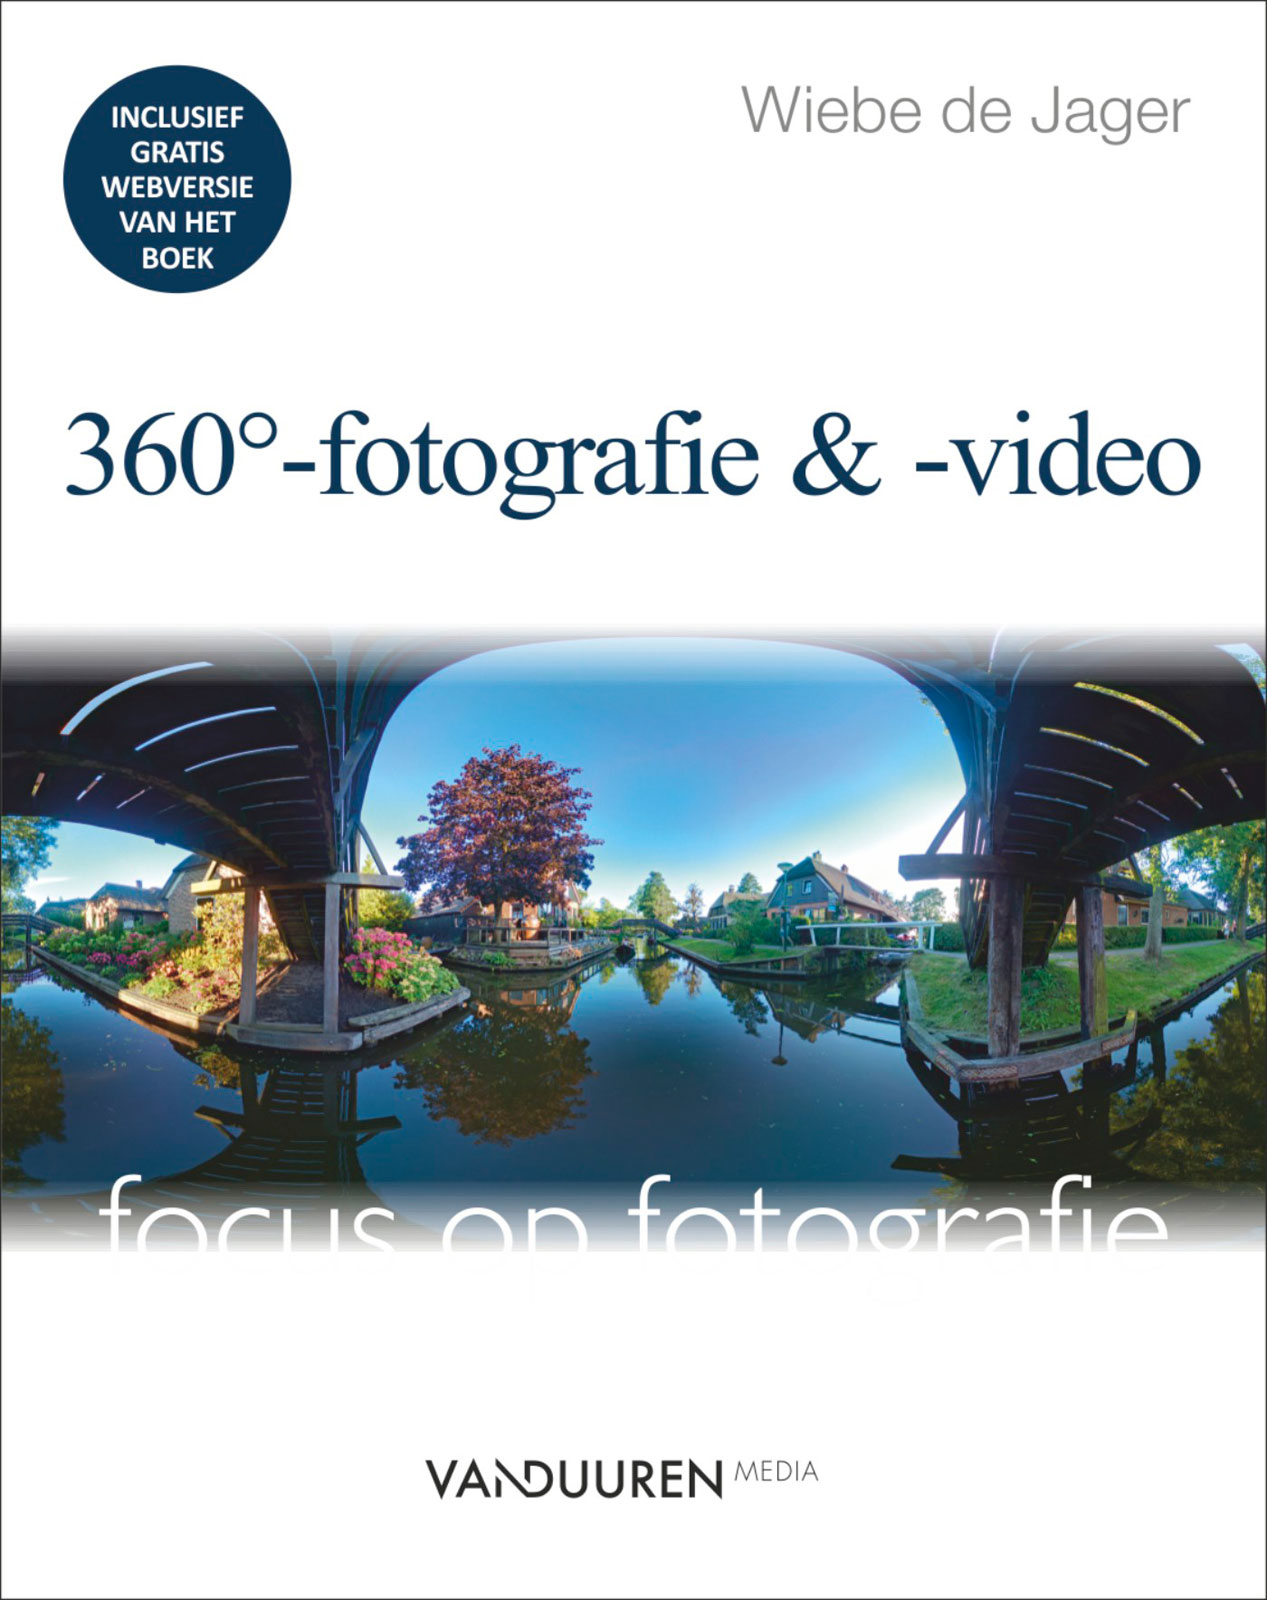 Focus op fotografie: 360°-fotografie & -video - Wiebe de Jager, isbn 9789463560160